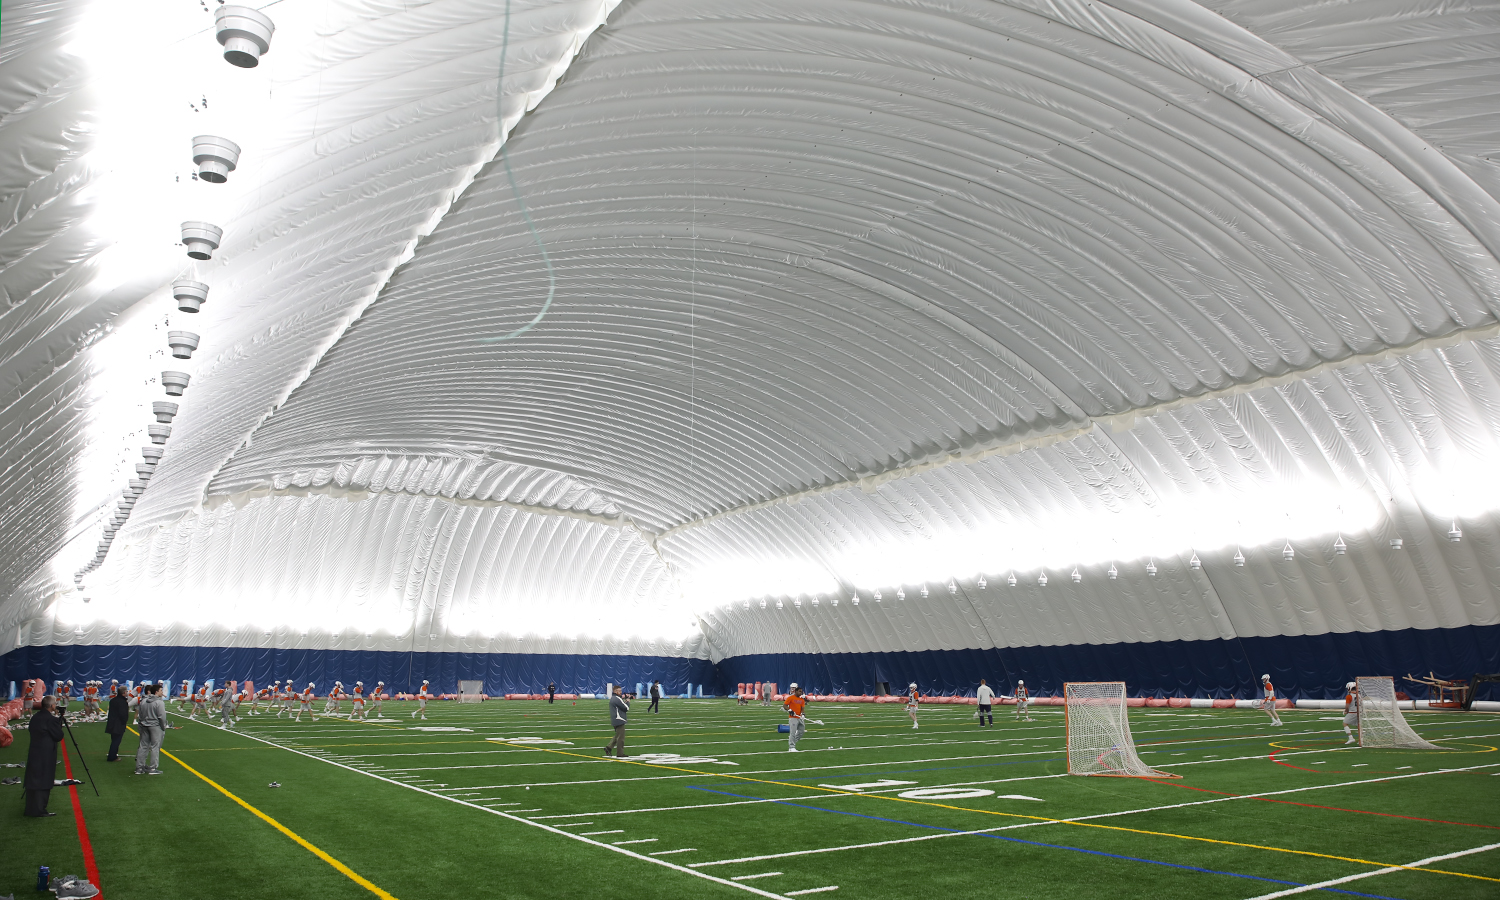 The Hobart Lacrosse team practices on the new indoor turf field located at the south end of Robert A. Bristol '31 Field House.